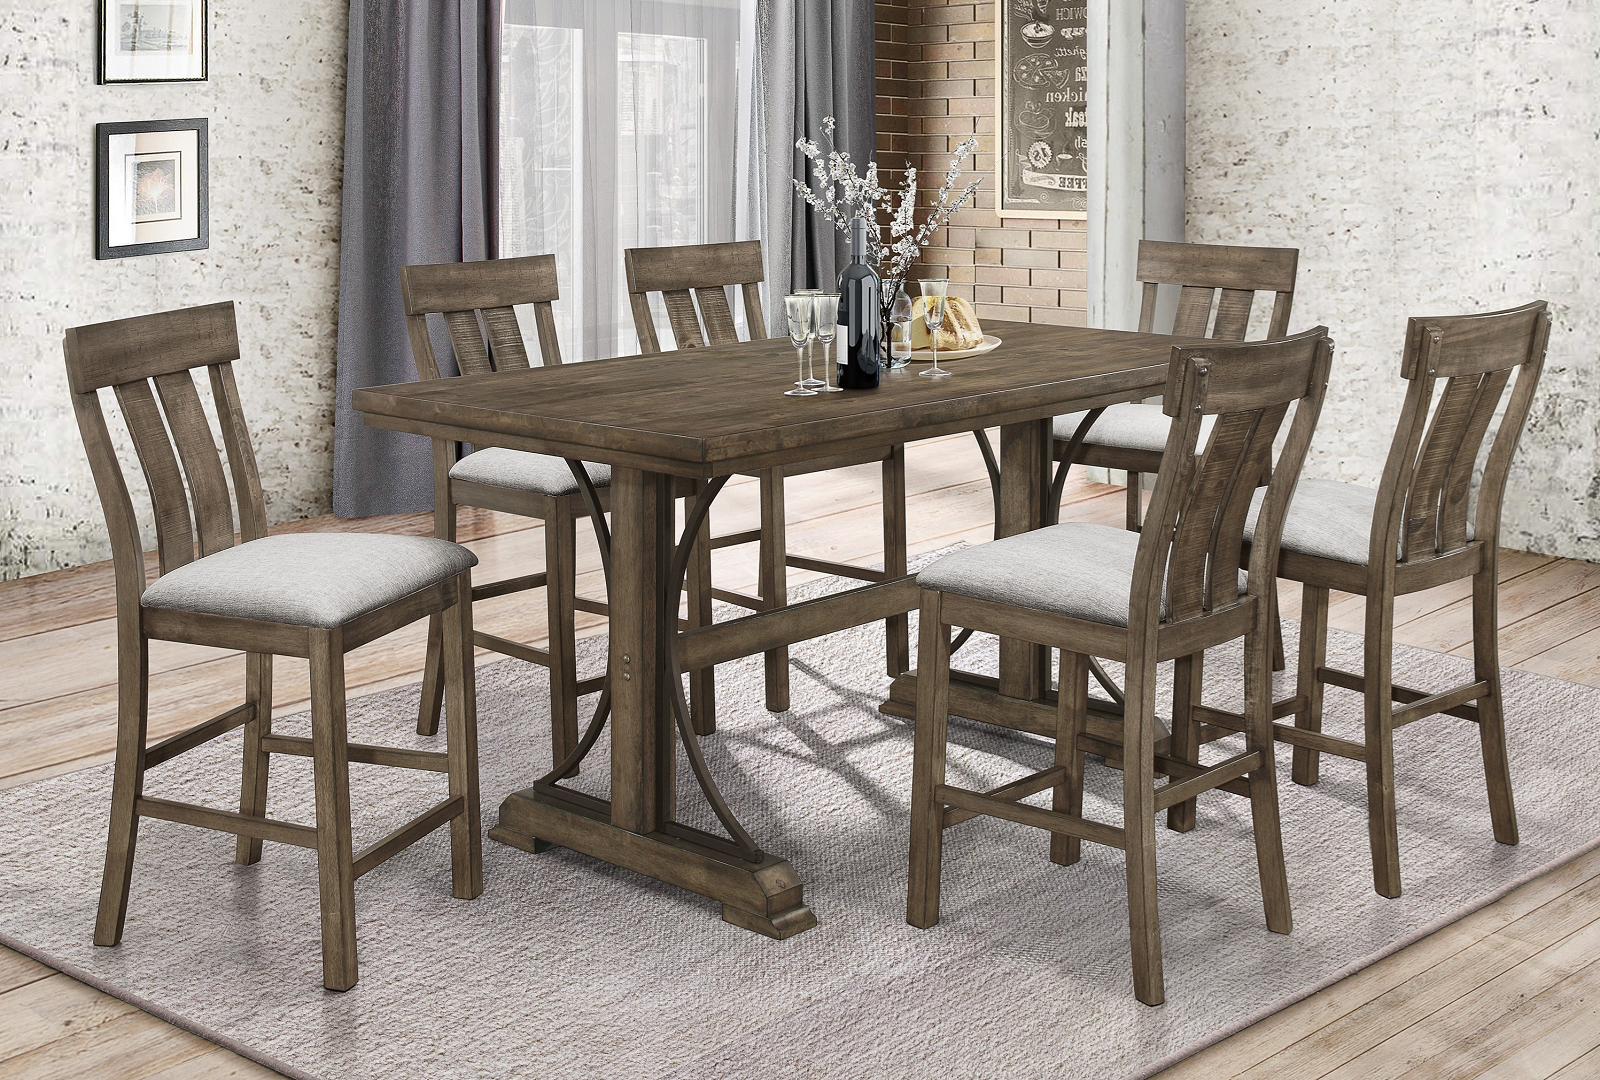 Counter Height Dining Katy Furniture